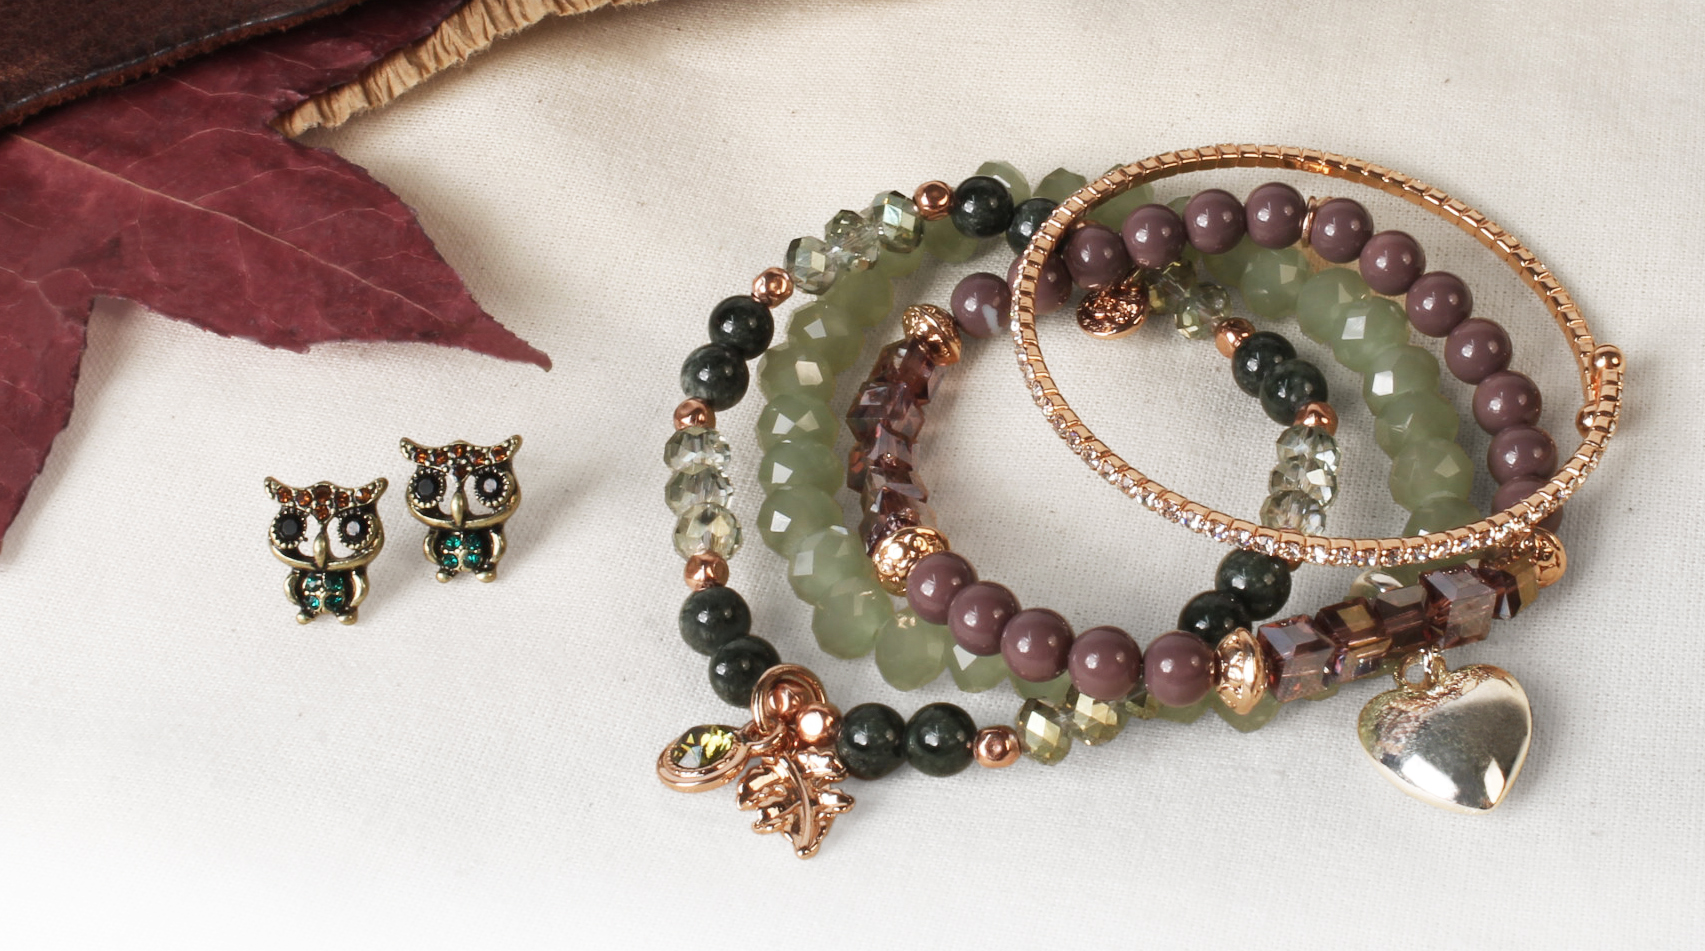 Woman Bracelets with charms and beads